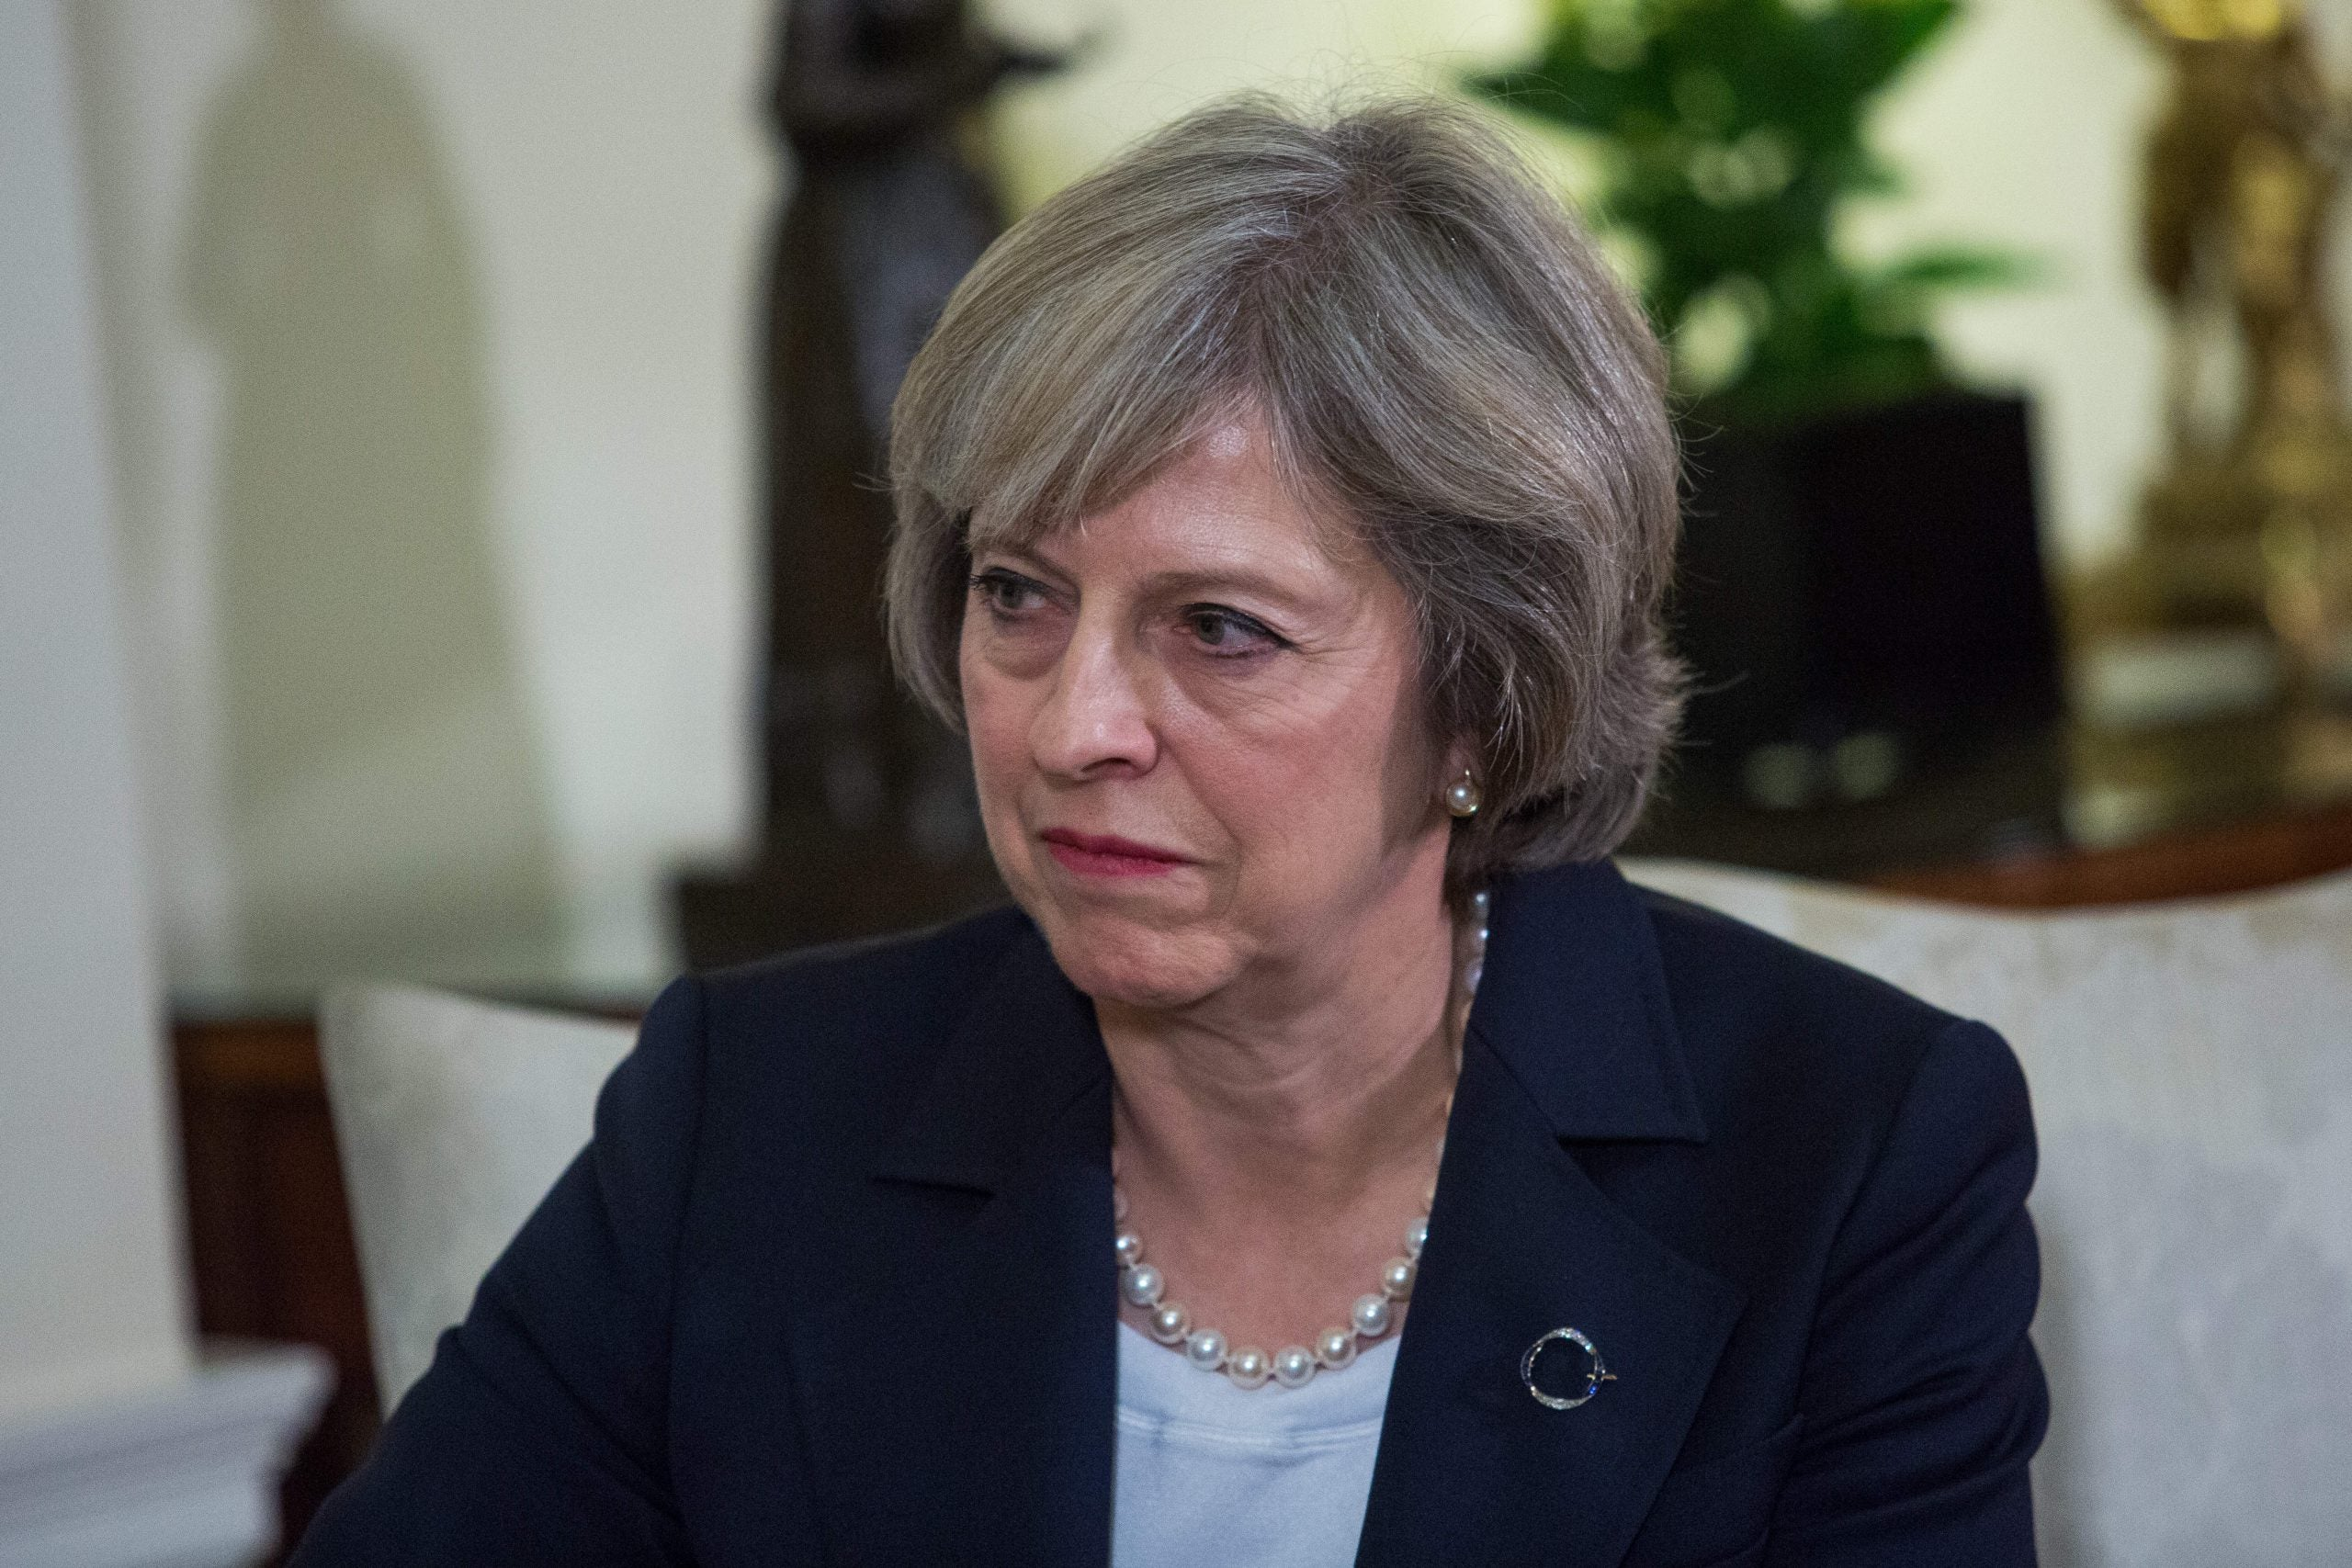 Theresa May's mental health pledge should start with fair funding